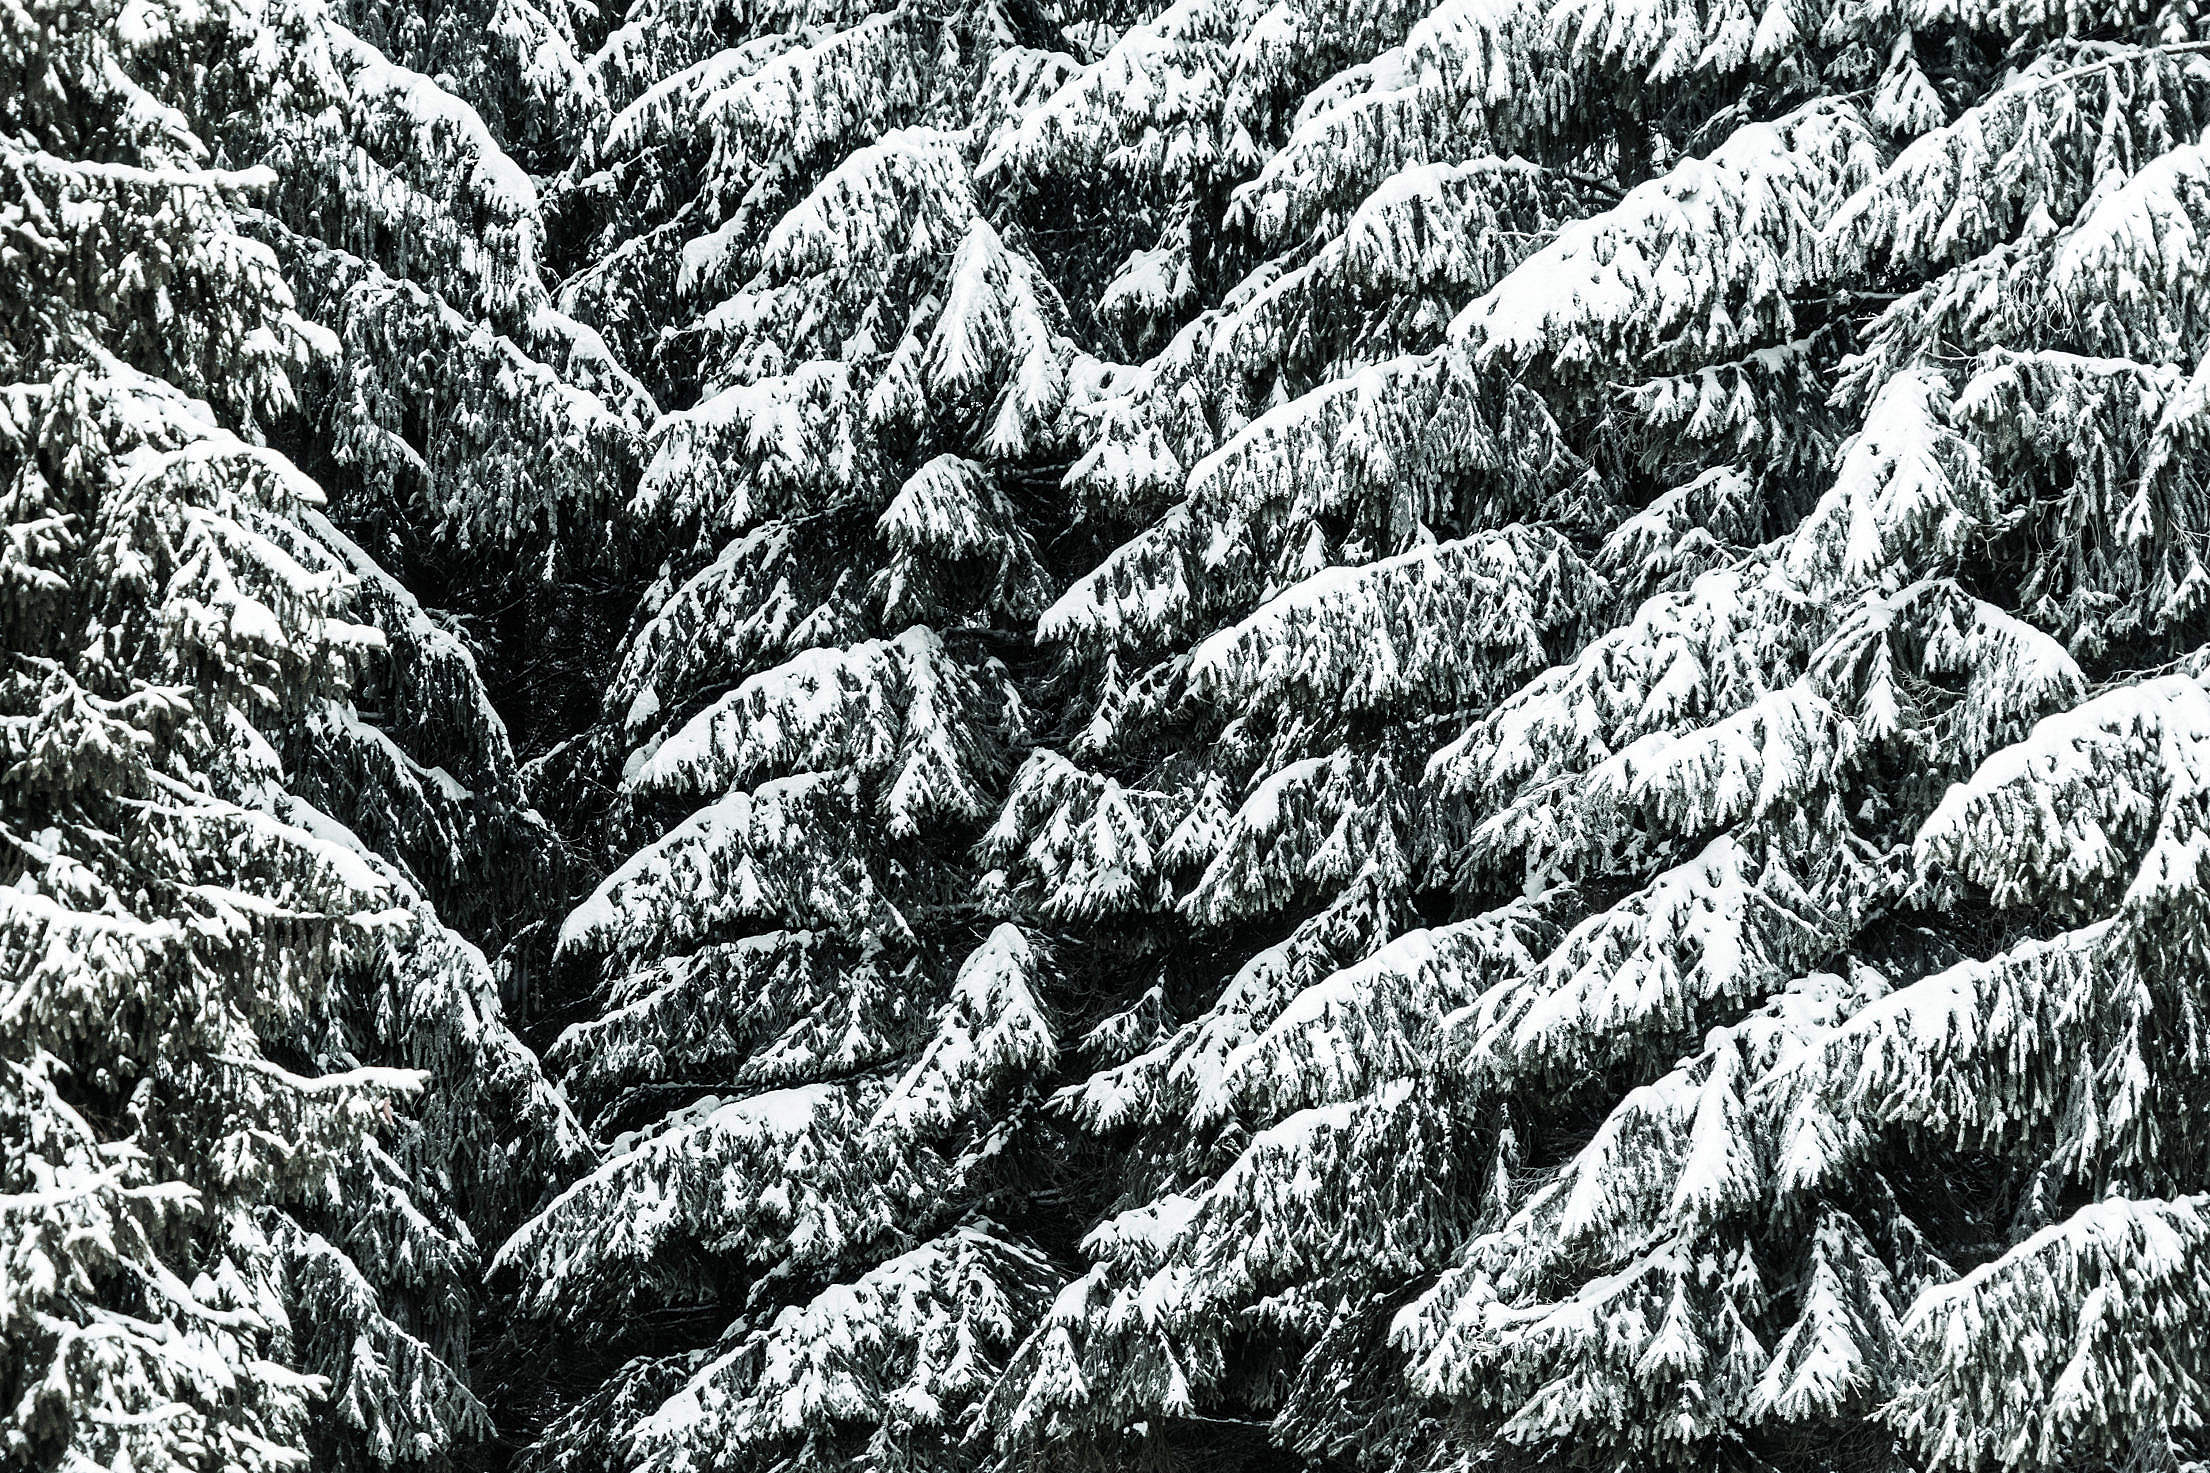 Conifer Trees Covered with Snow Close Up Background Free Stock Photo